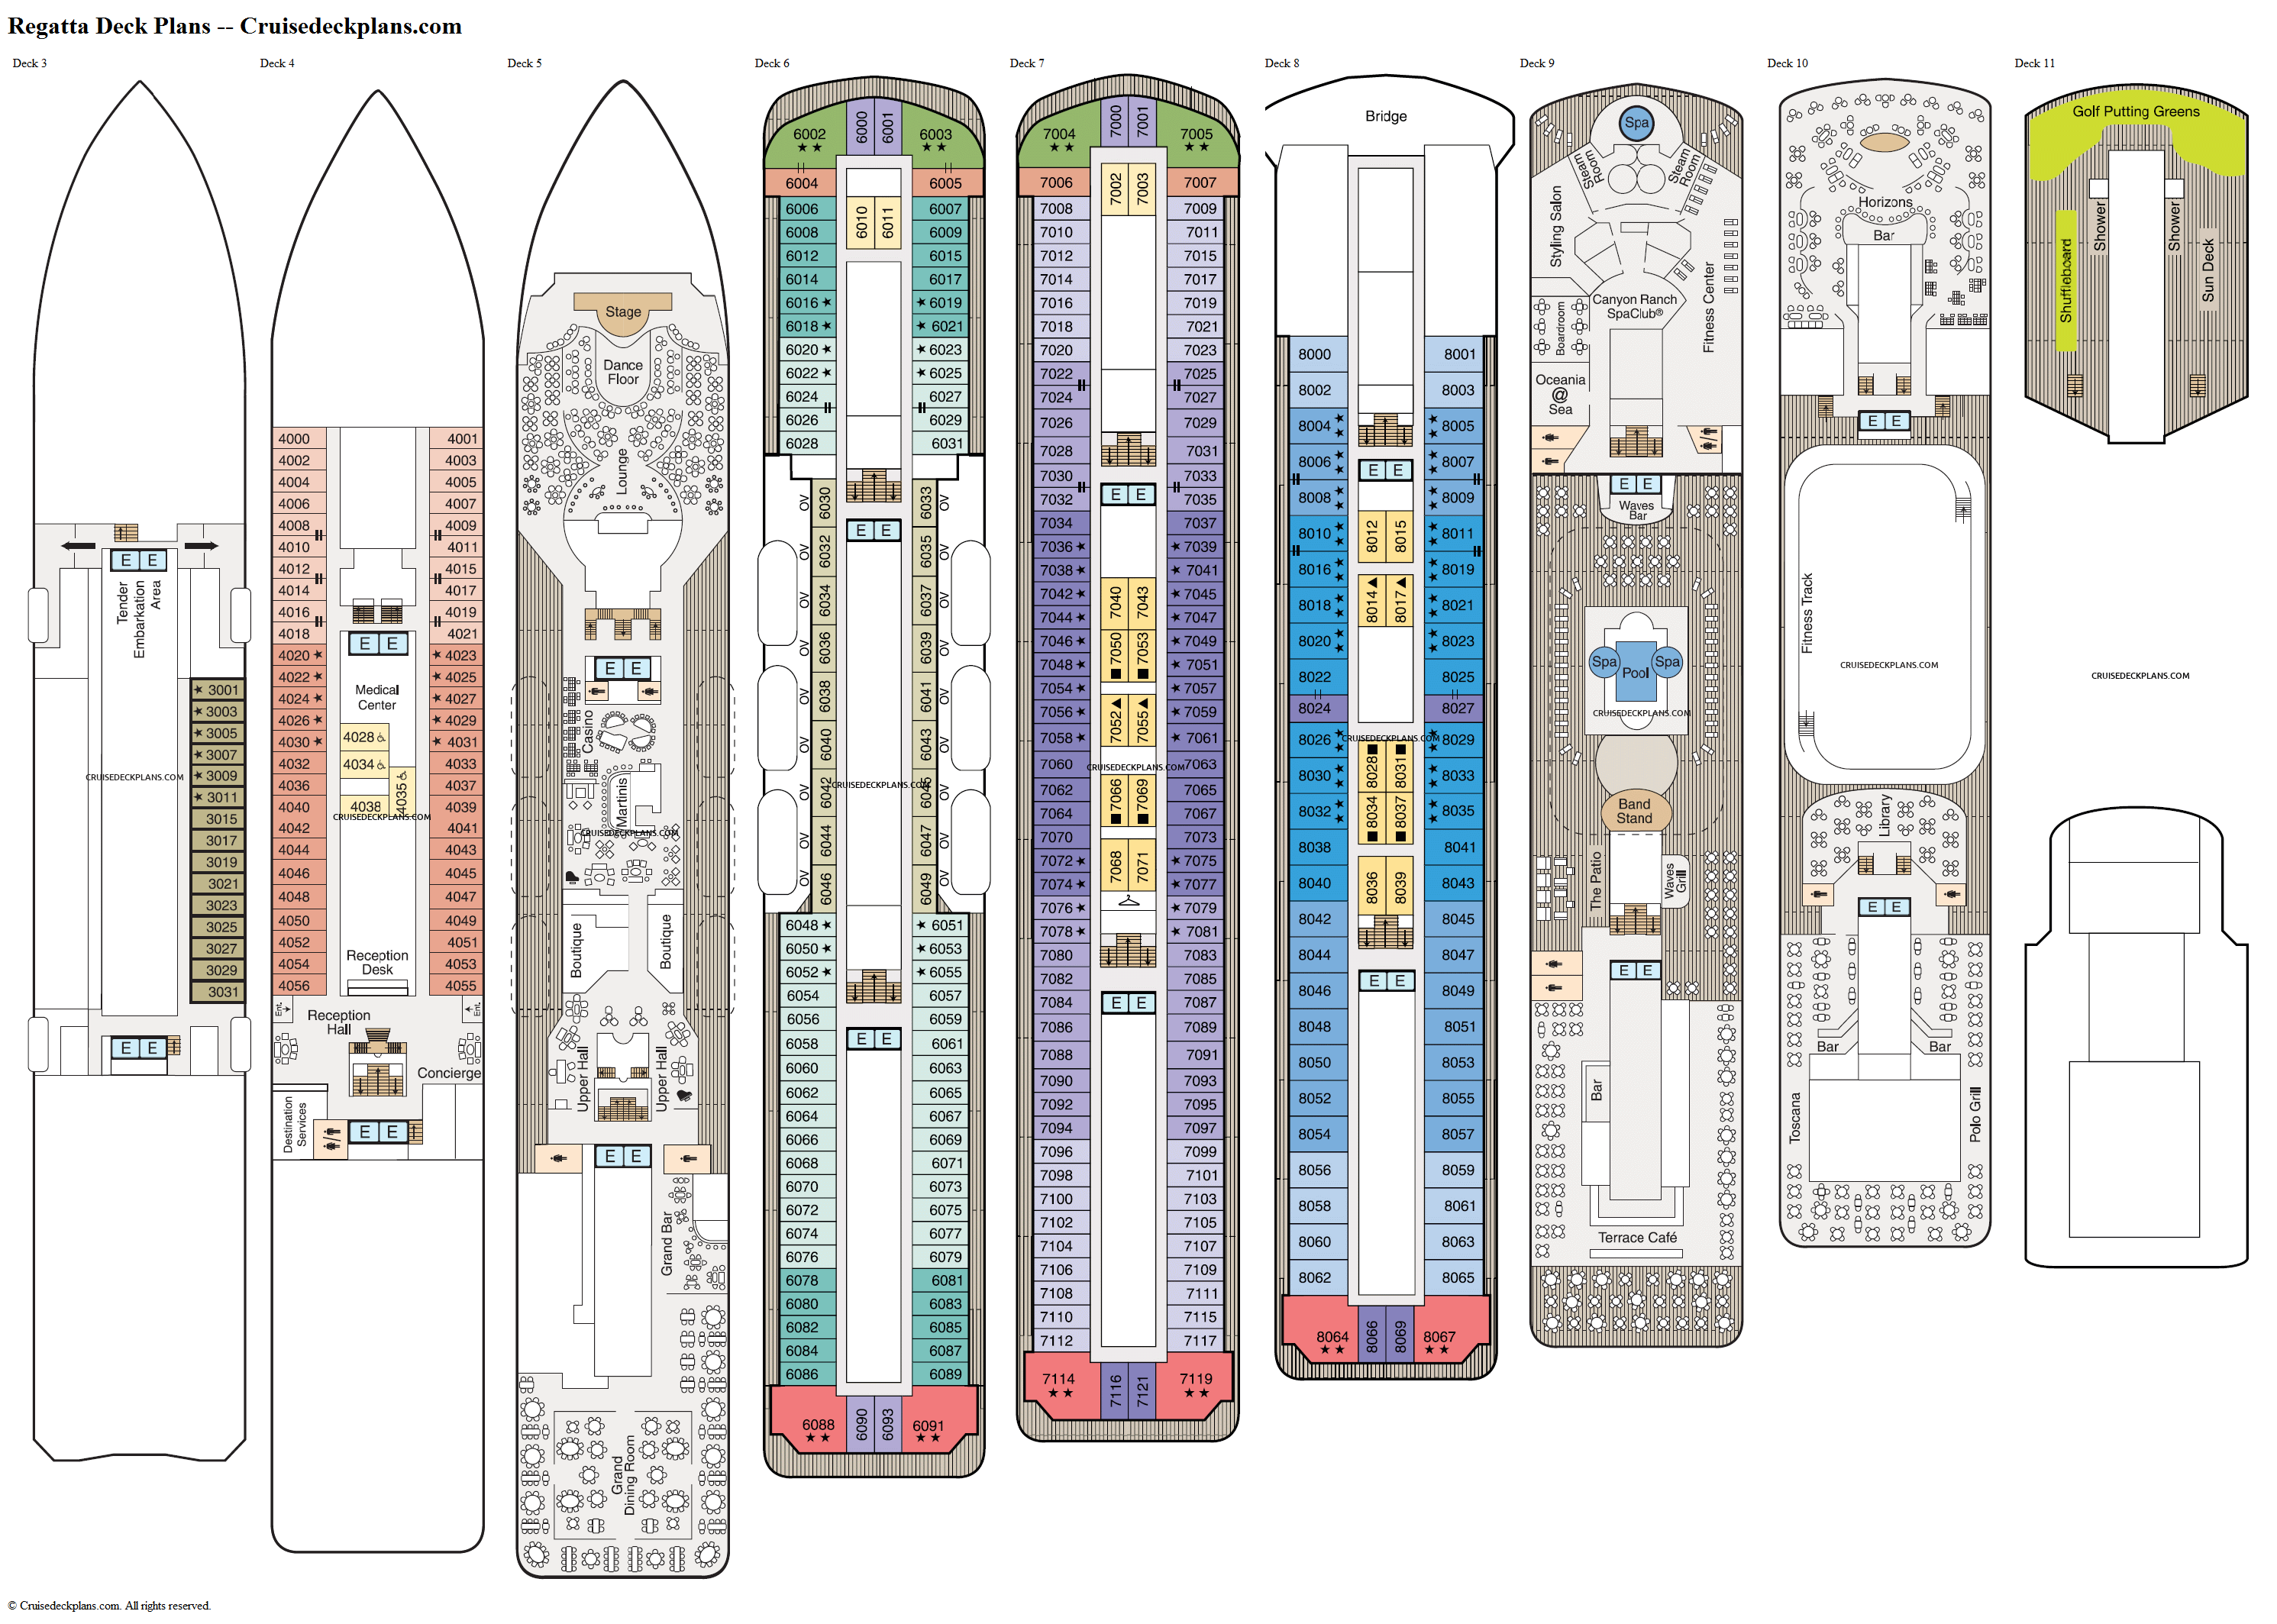 Regatta deck plans image